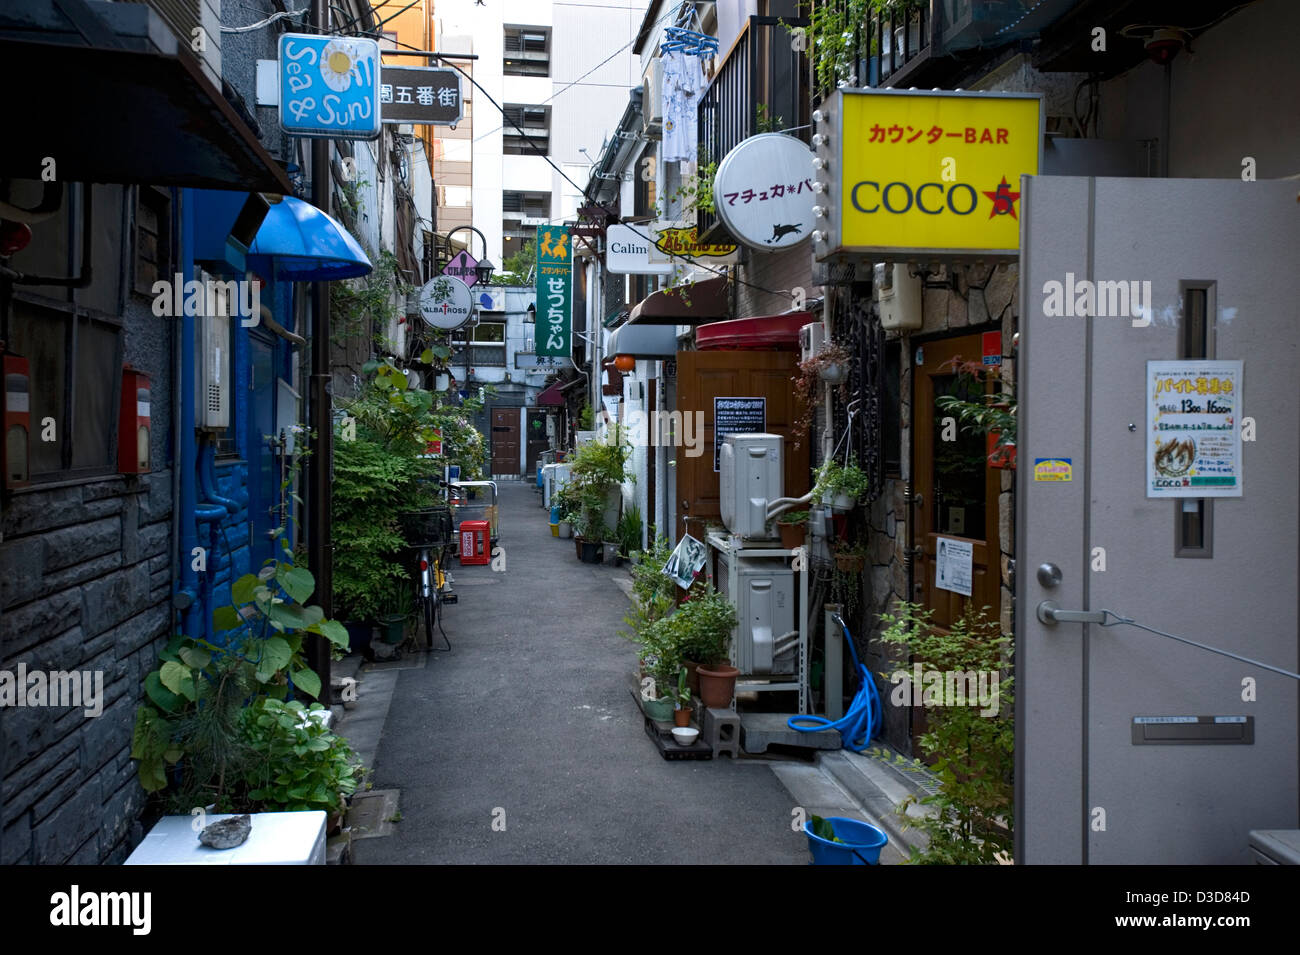 Narrow backstreet alley of bygone-era bars, pubs and eateries from 1950's in the Golden-Gai neighborhood of - Stock Image